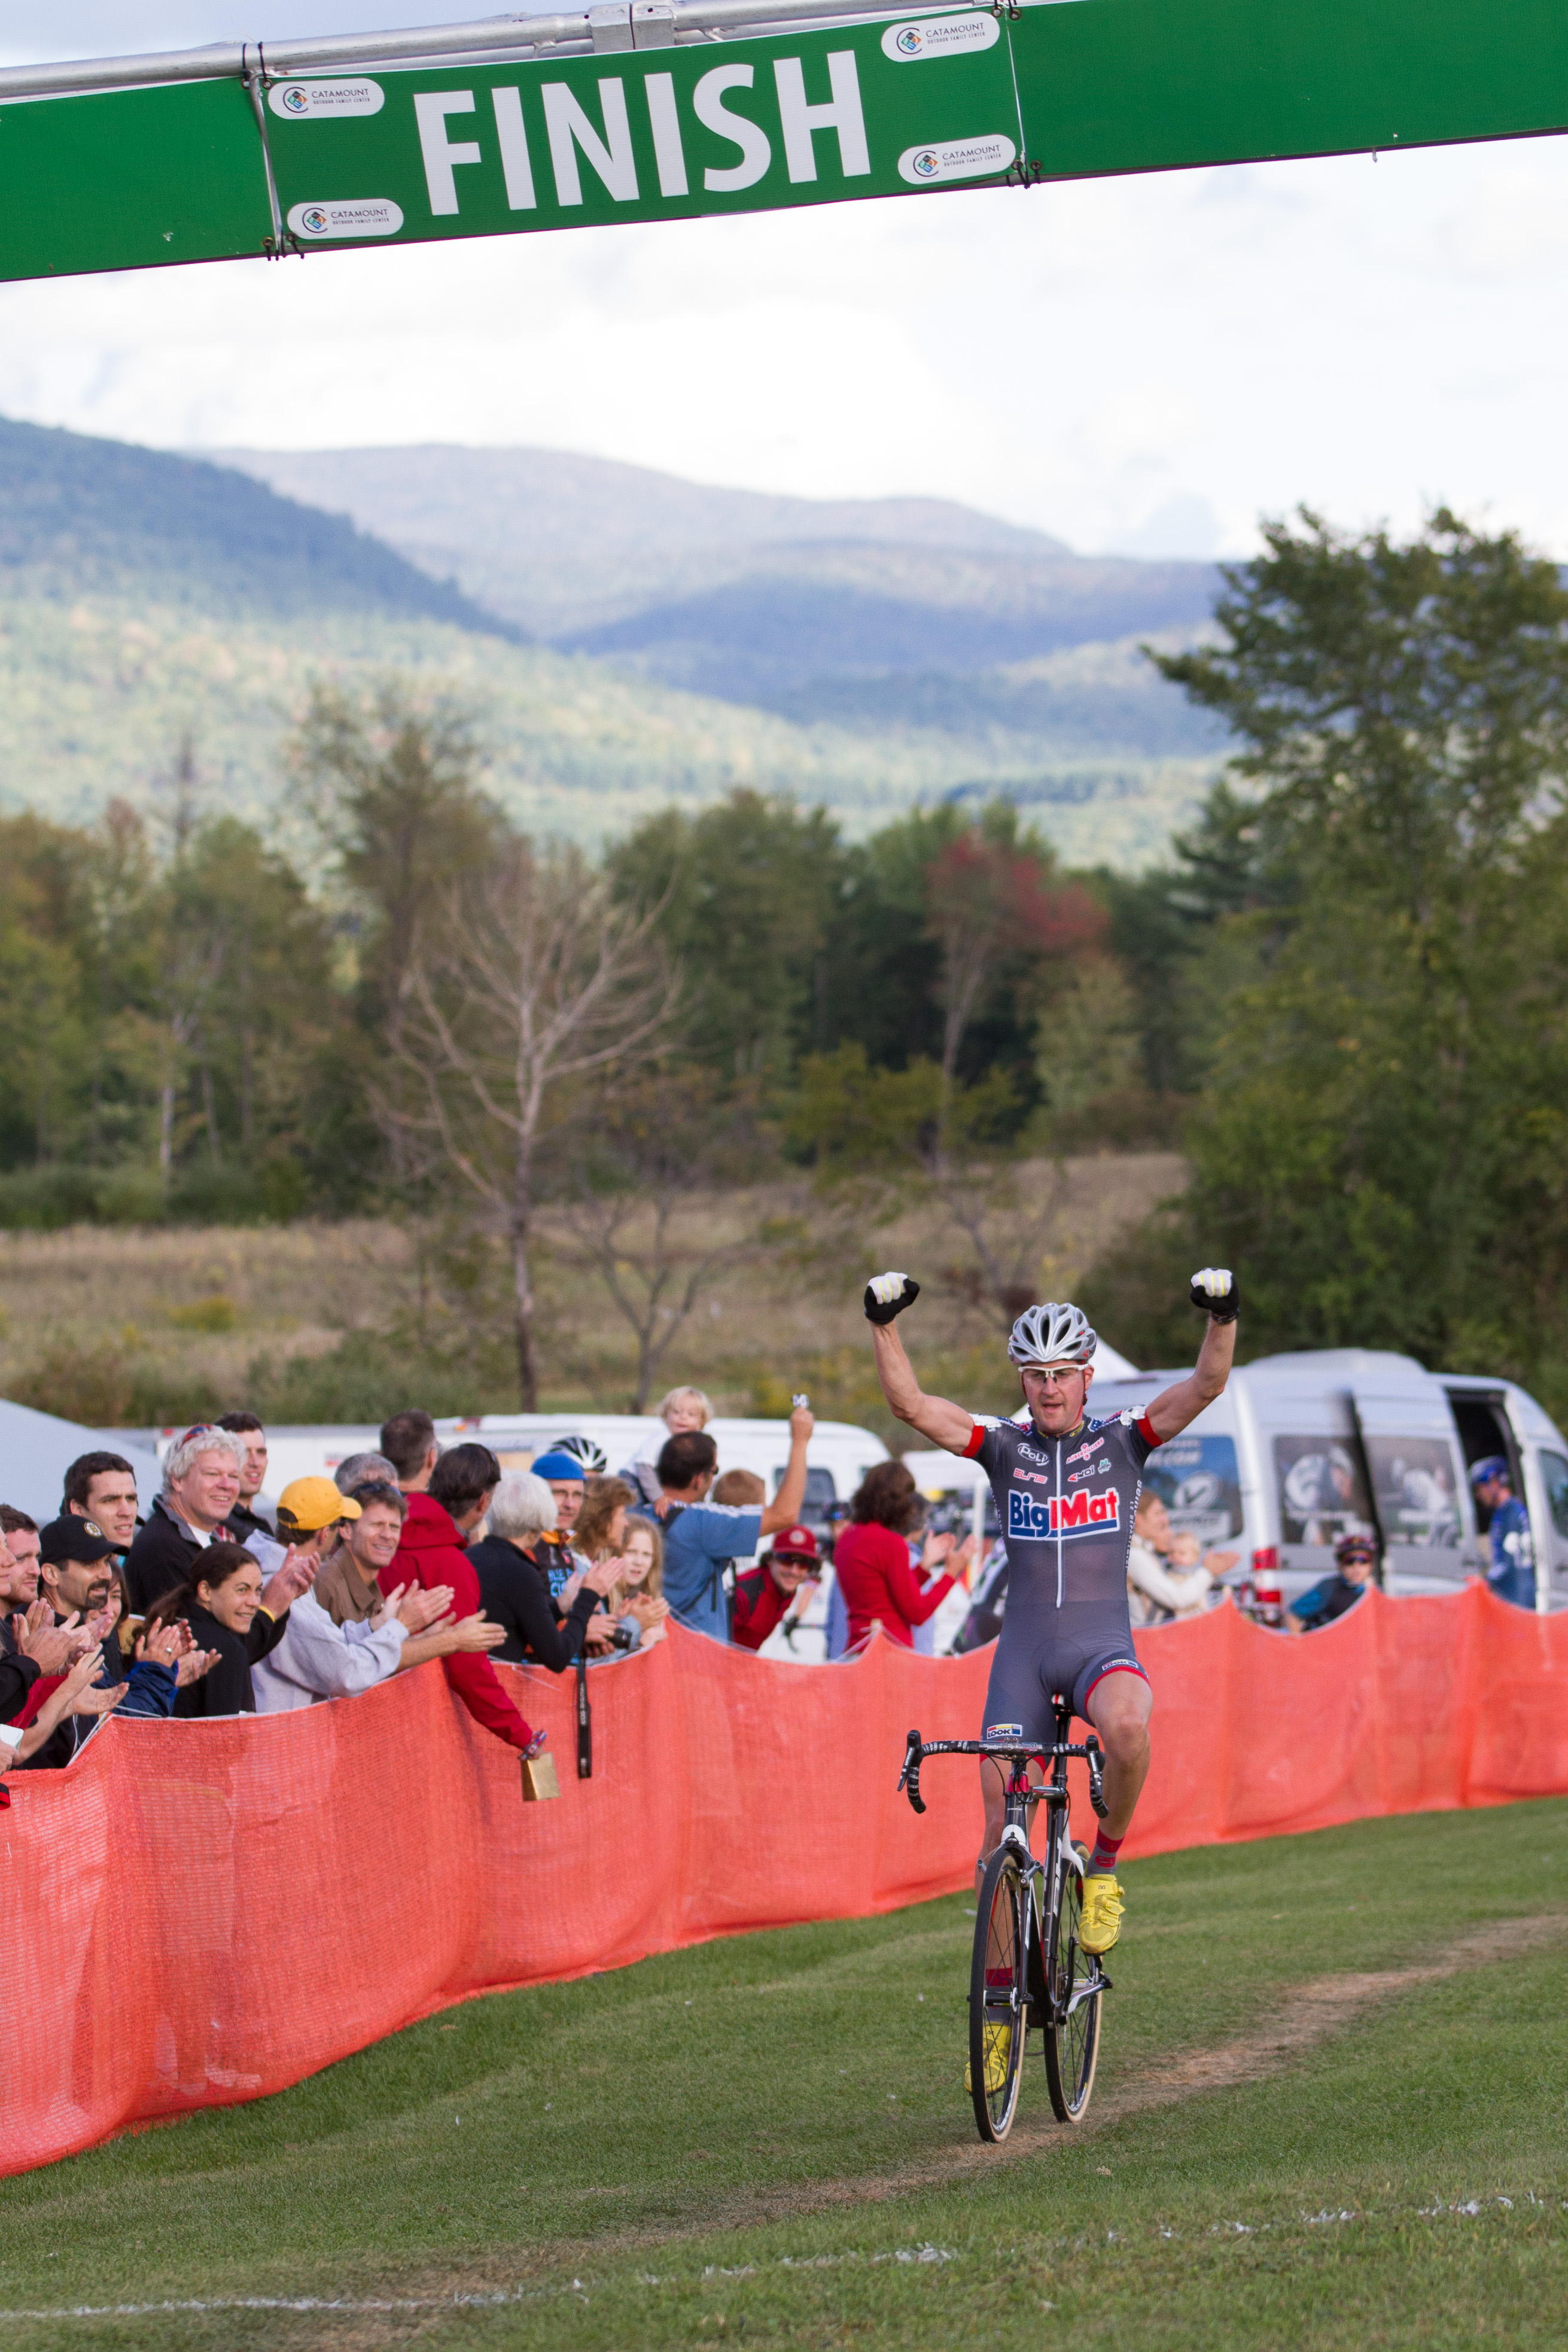 Bazin grabs the victory at Catamount GP - Day 1. Photo: Todd Prekaski.